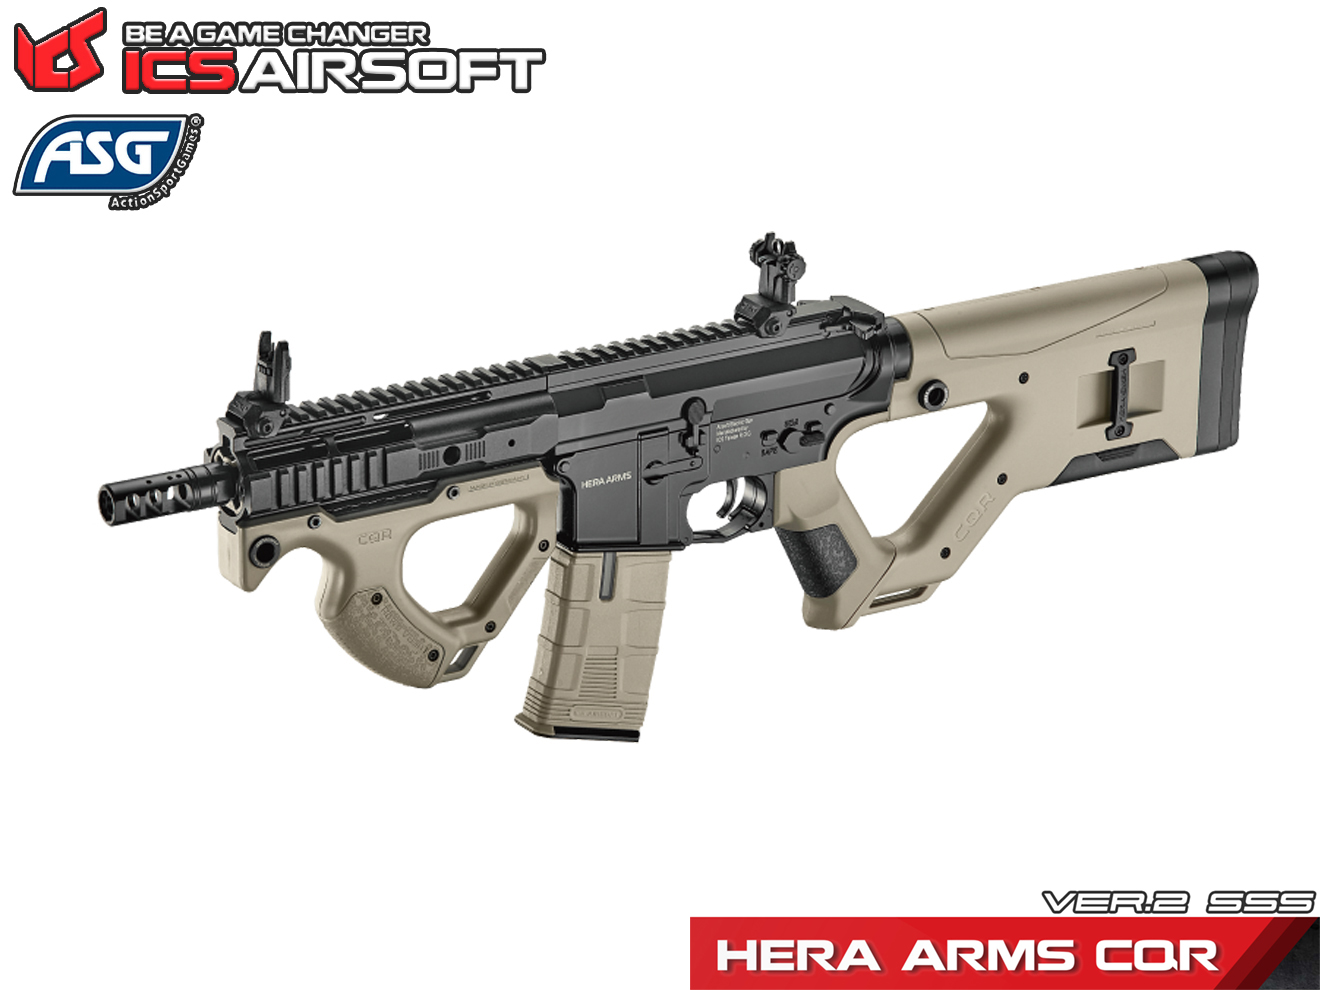 ICS×ASG HERA ARMS CQR AEG Two-Tone Ver.2 SSS+EBB JP Ver. ◆HERA ARMS正規ライセンス取得 電動ガン ツートン バージョン2 タンカラー